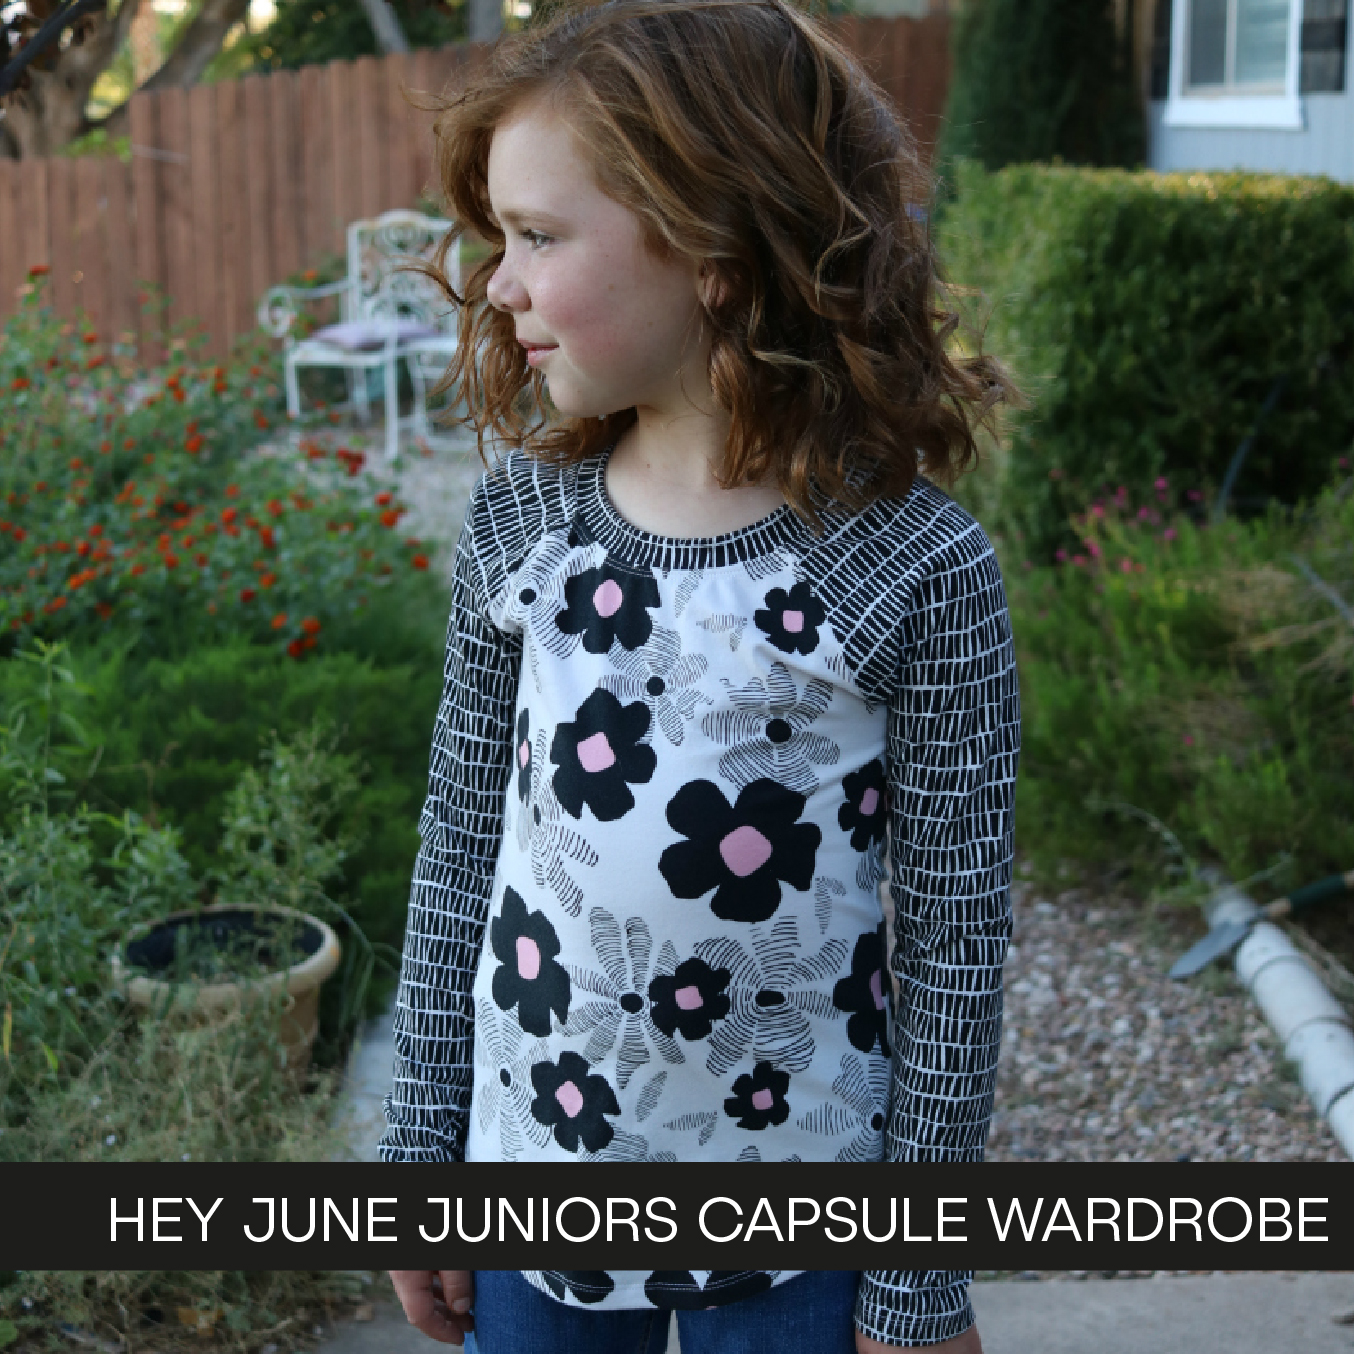 Hey June Juniors Capsule Wardrobe